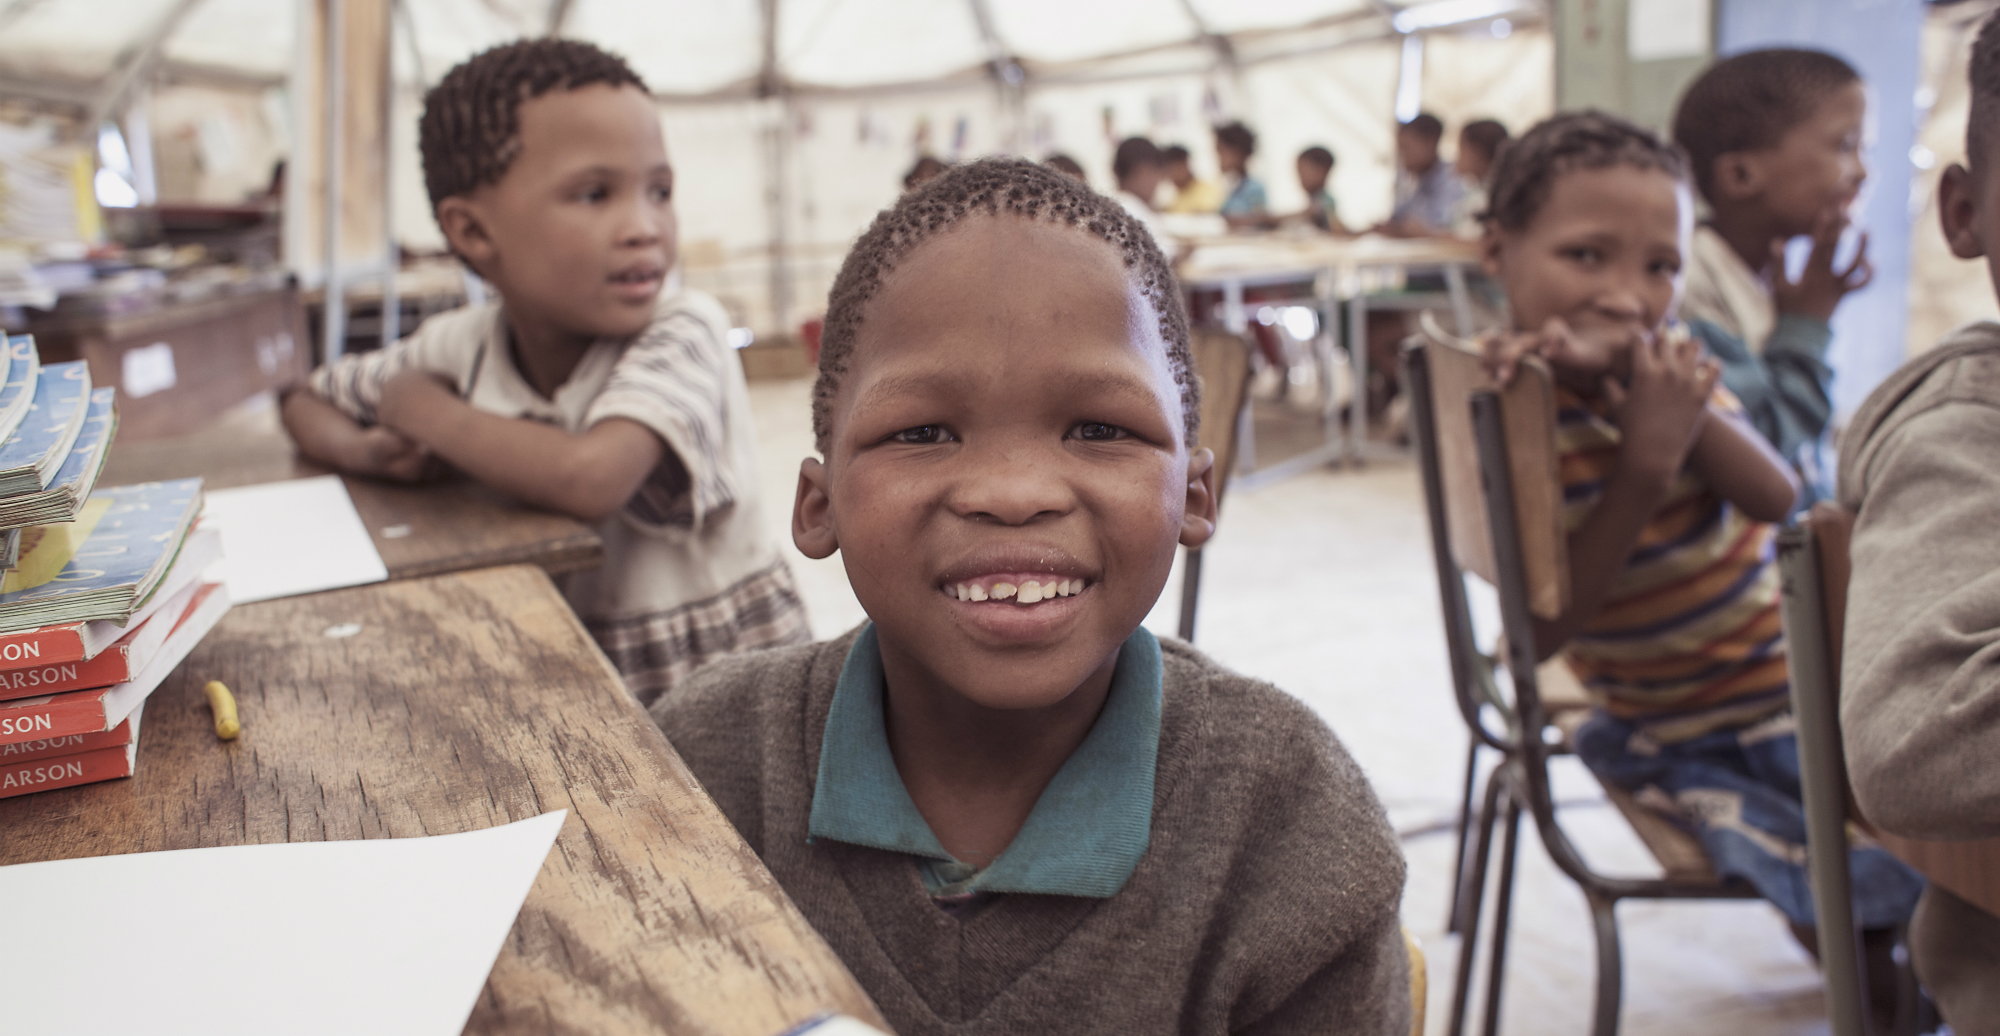 Young boy smiling in classroom